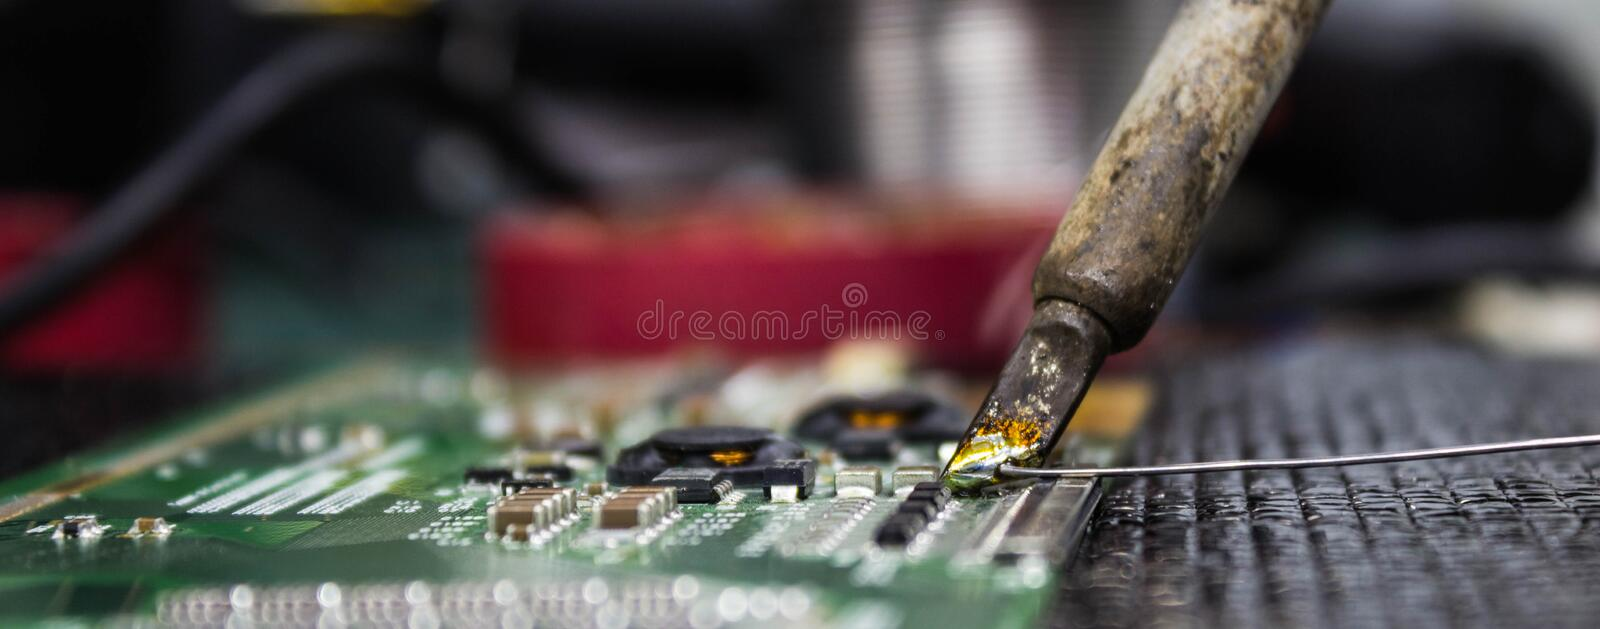 Solder. Ing mainboard repair electronic devices and electronic royalty free stock photos